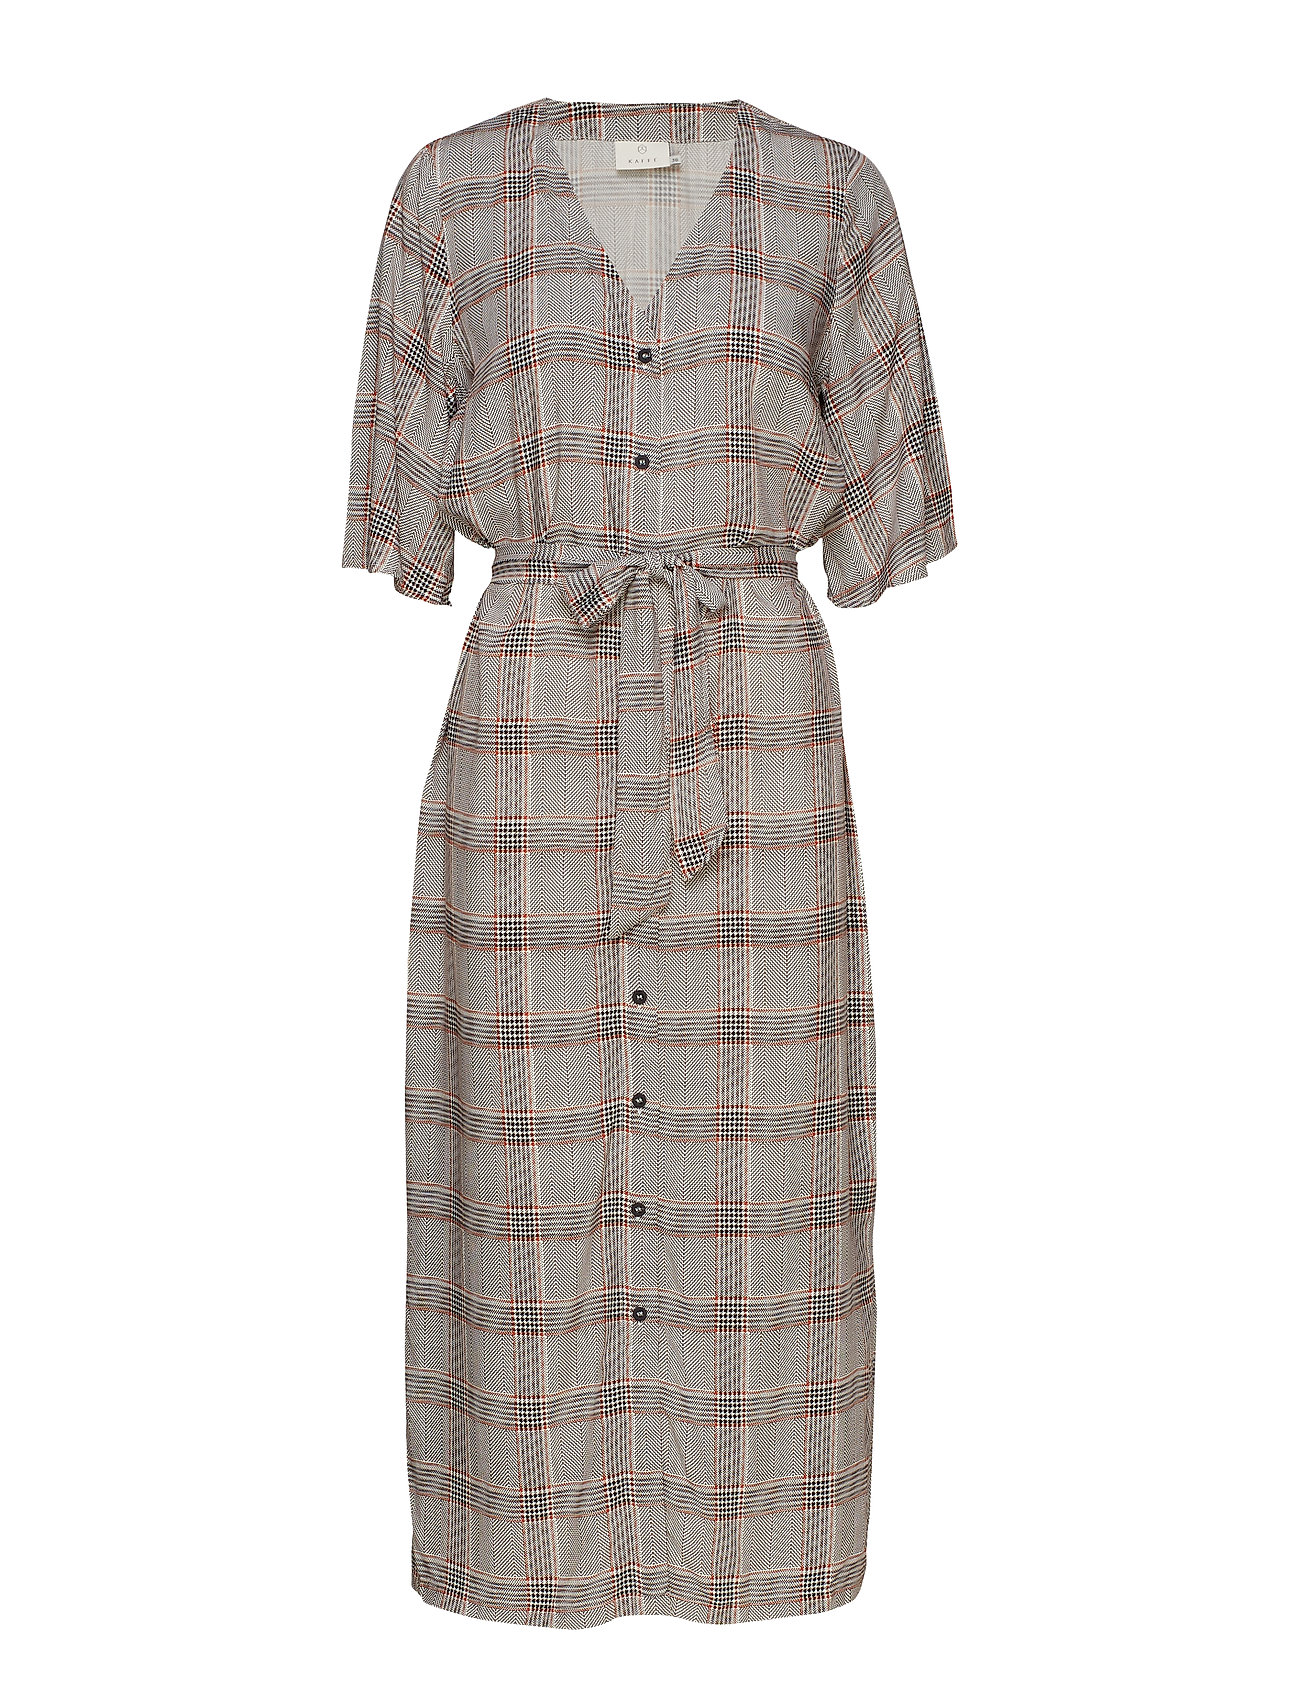 Kaffe KAcharlot Shirt Dress - CHALK